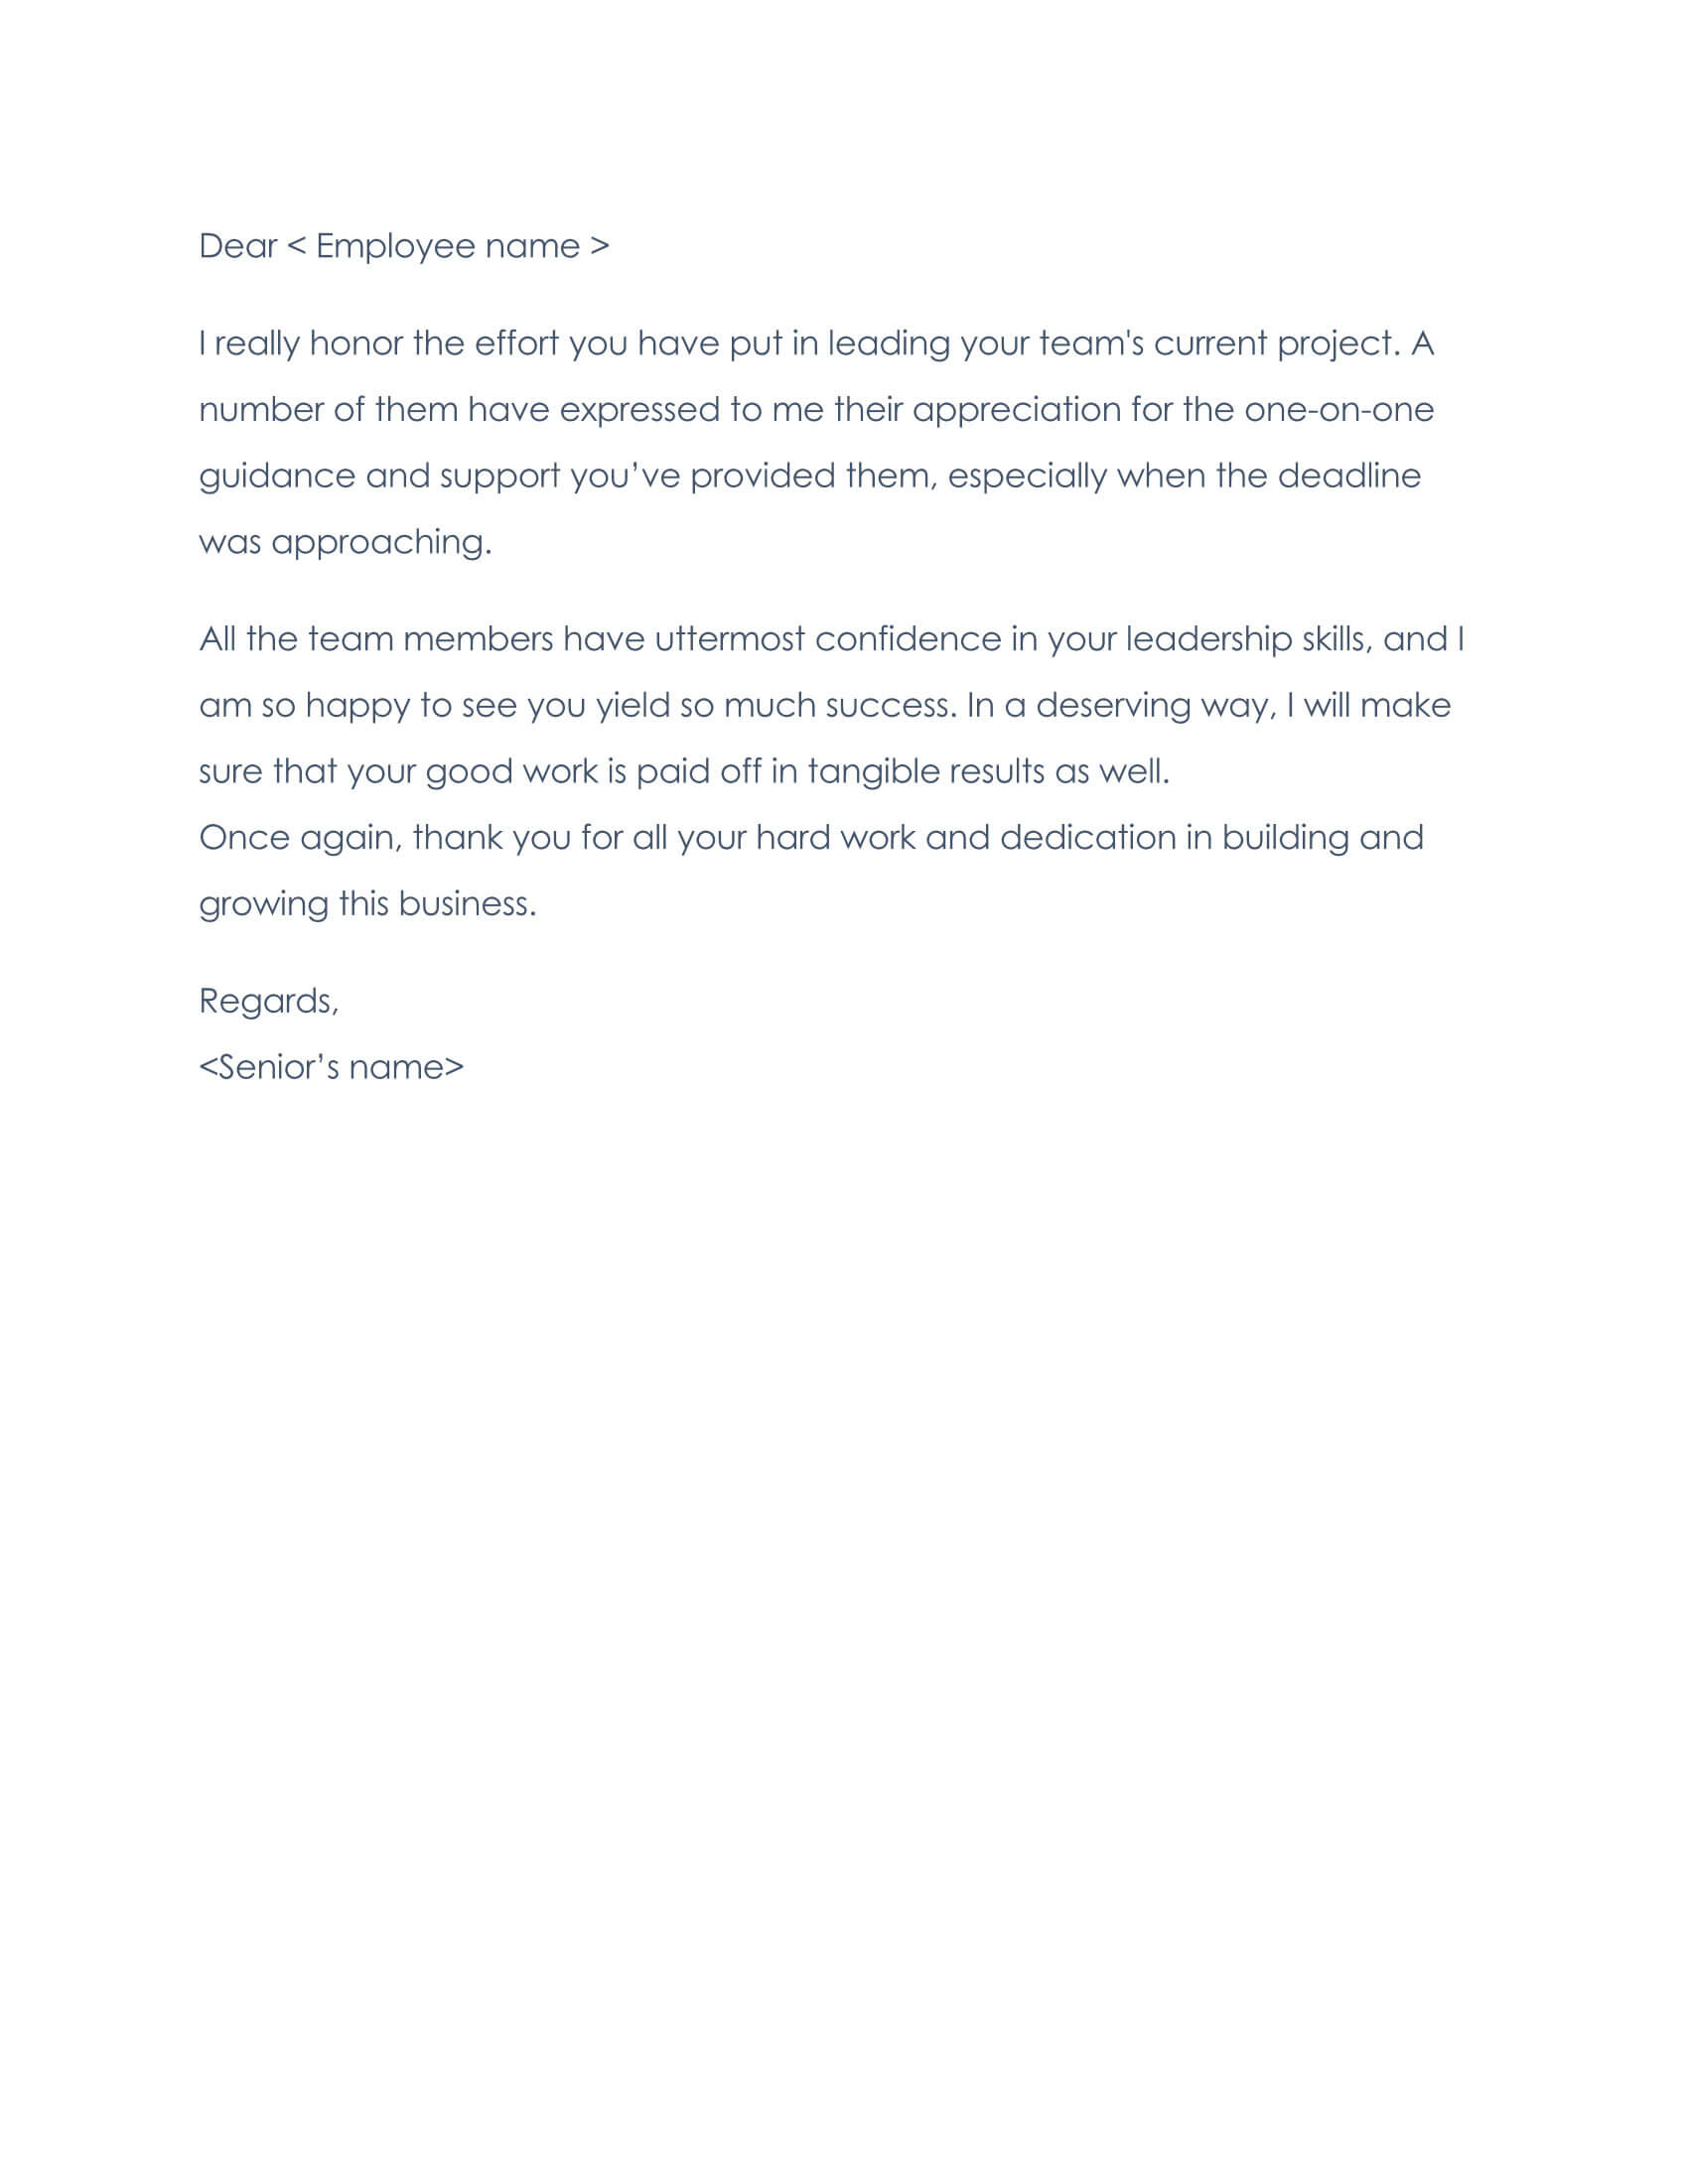 Employee Thank You Letter Sample 03